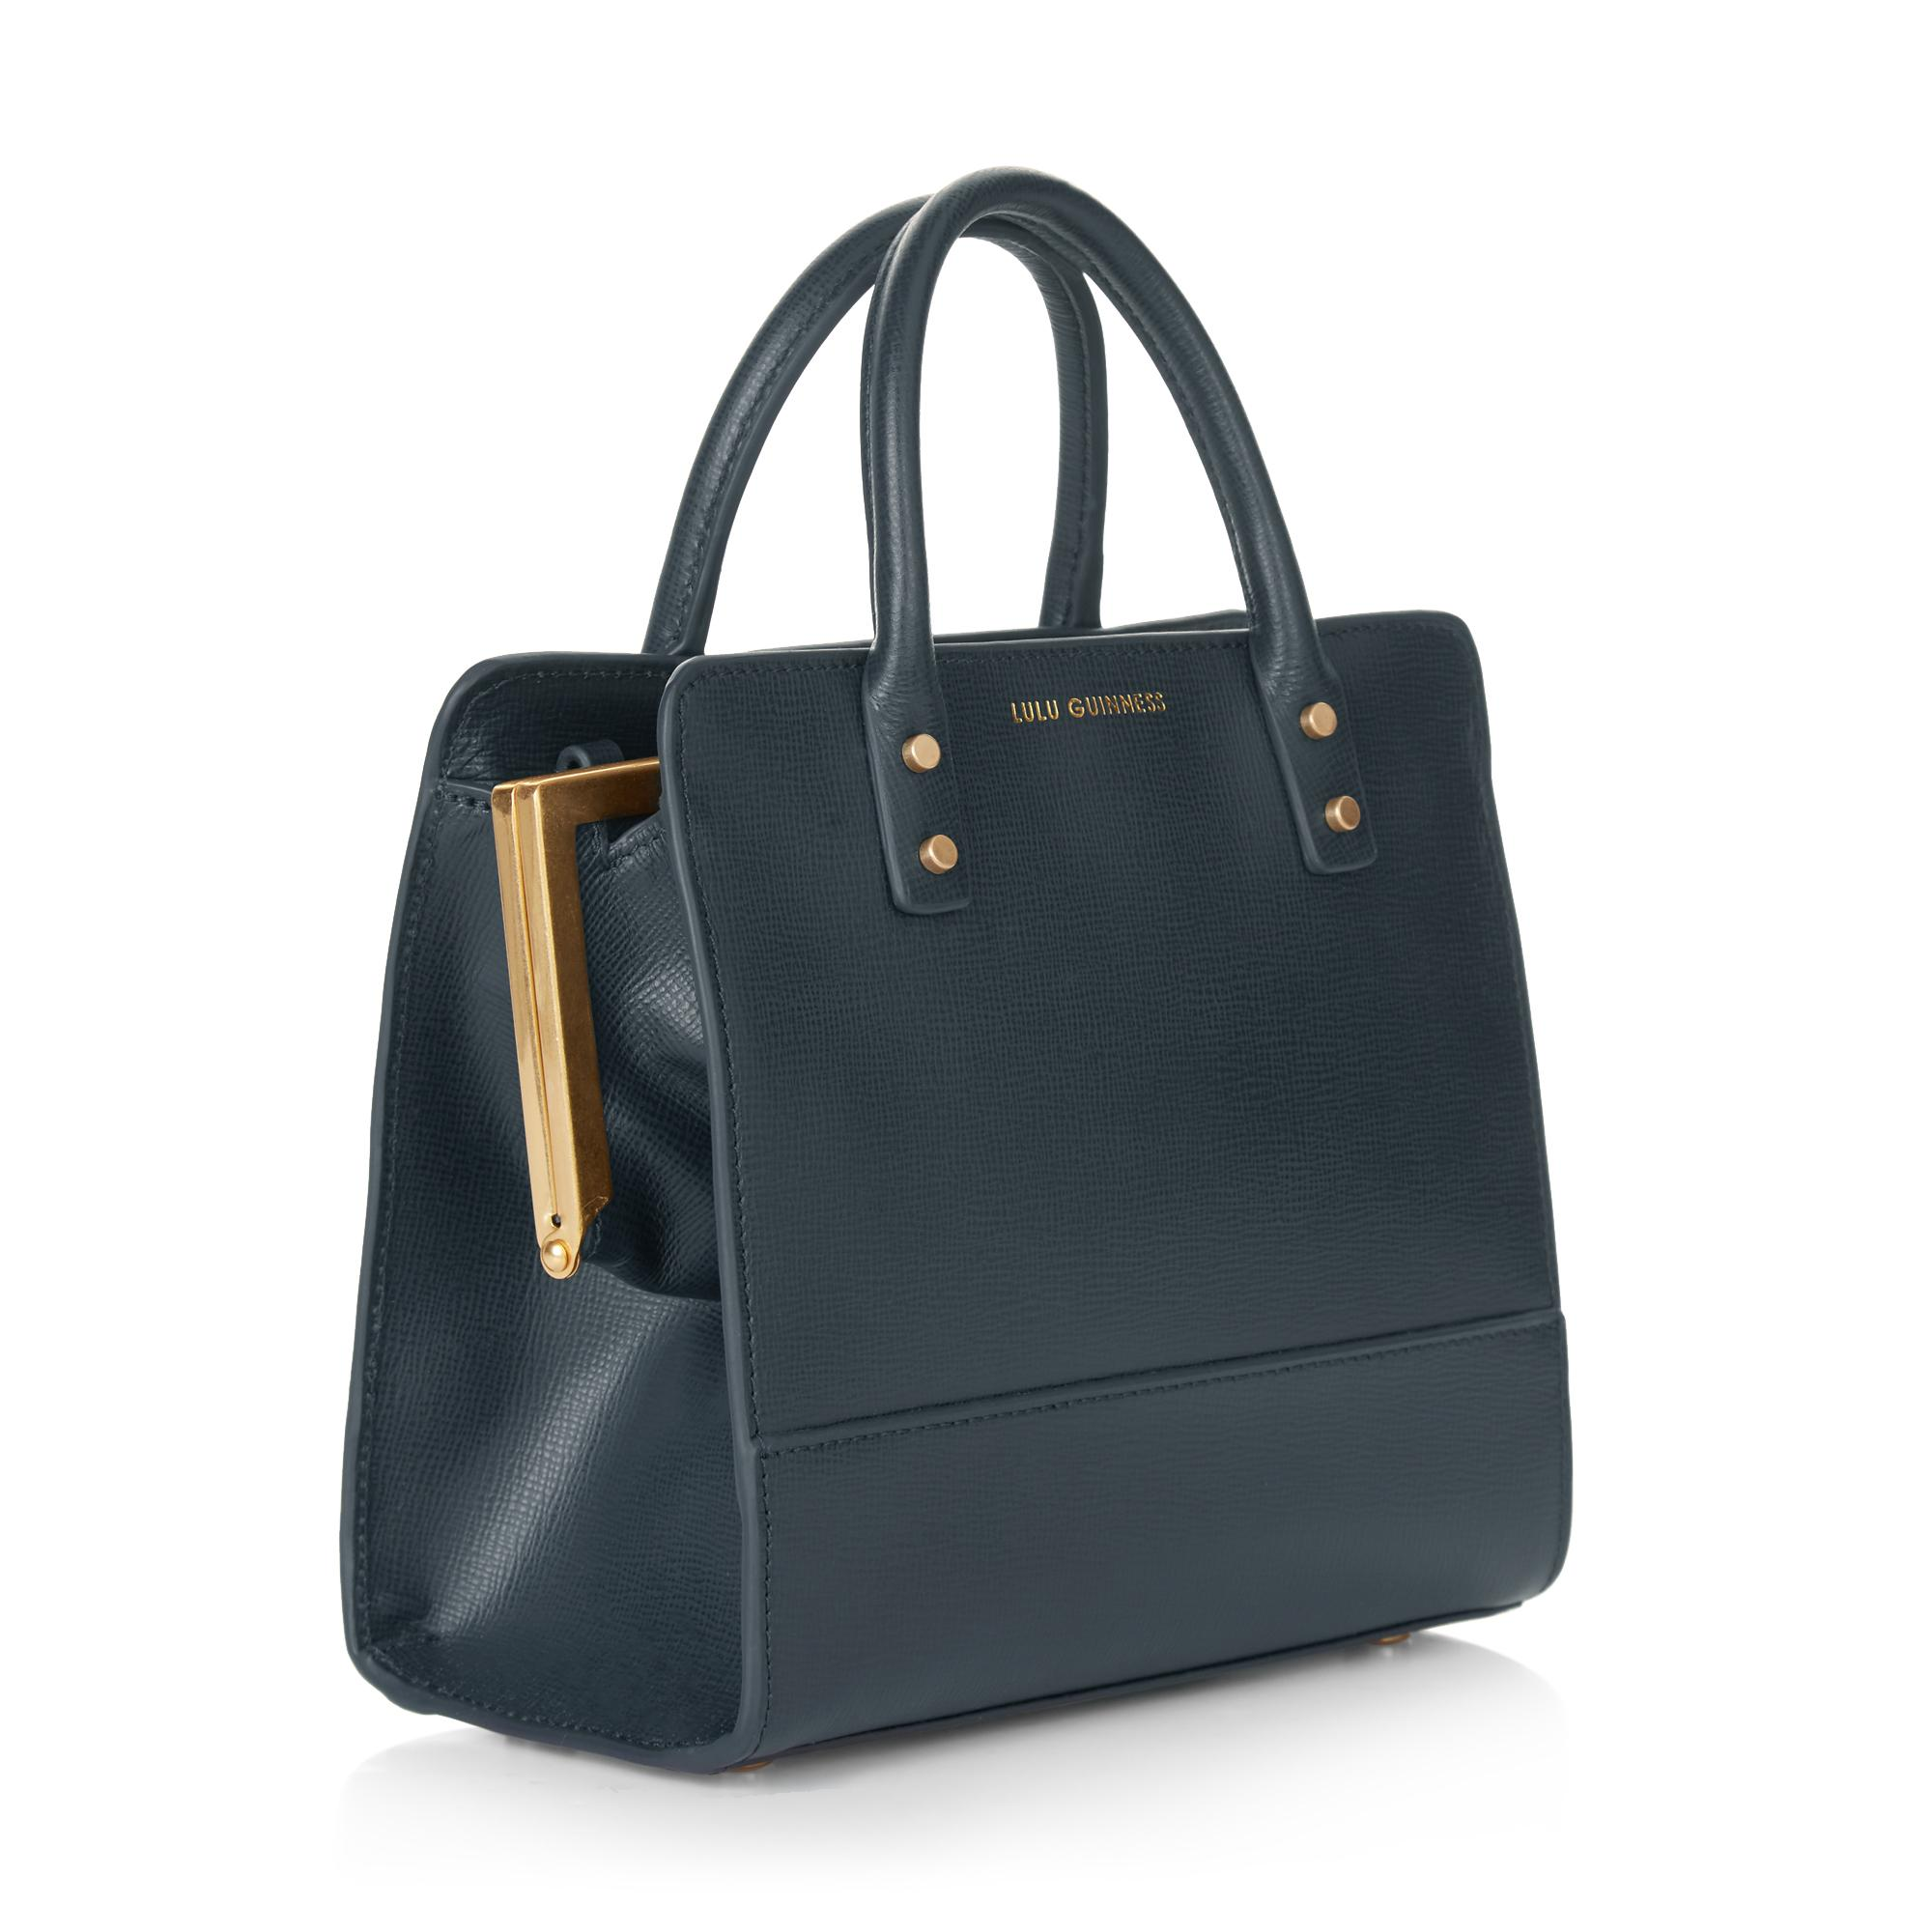 Lyst - Lulu Guinness Navy Textured Leather Mini Square Daphne in Blue 3cda5285d1